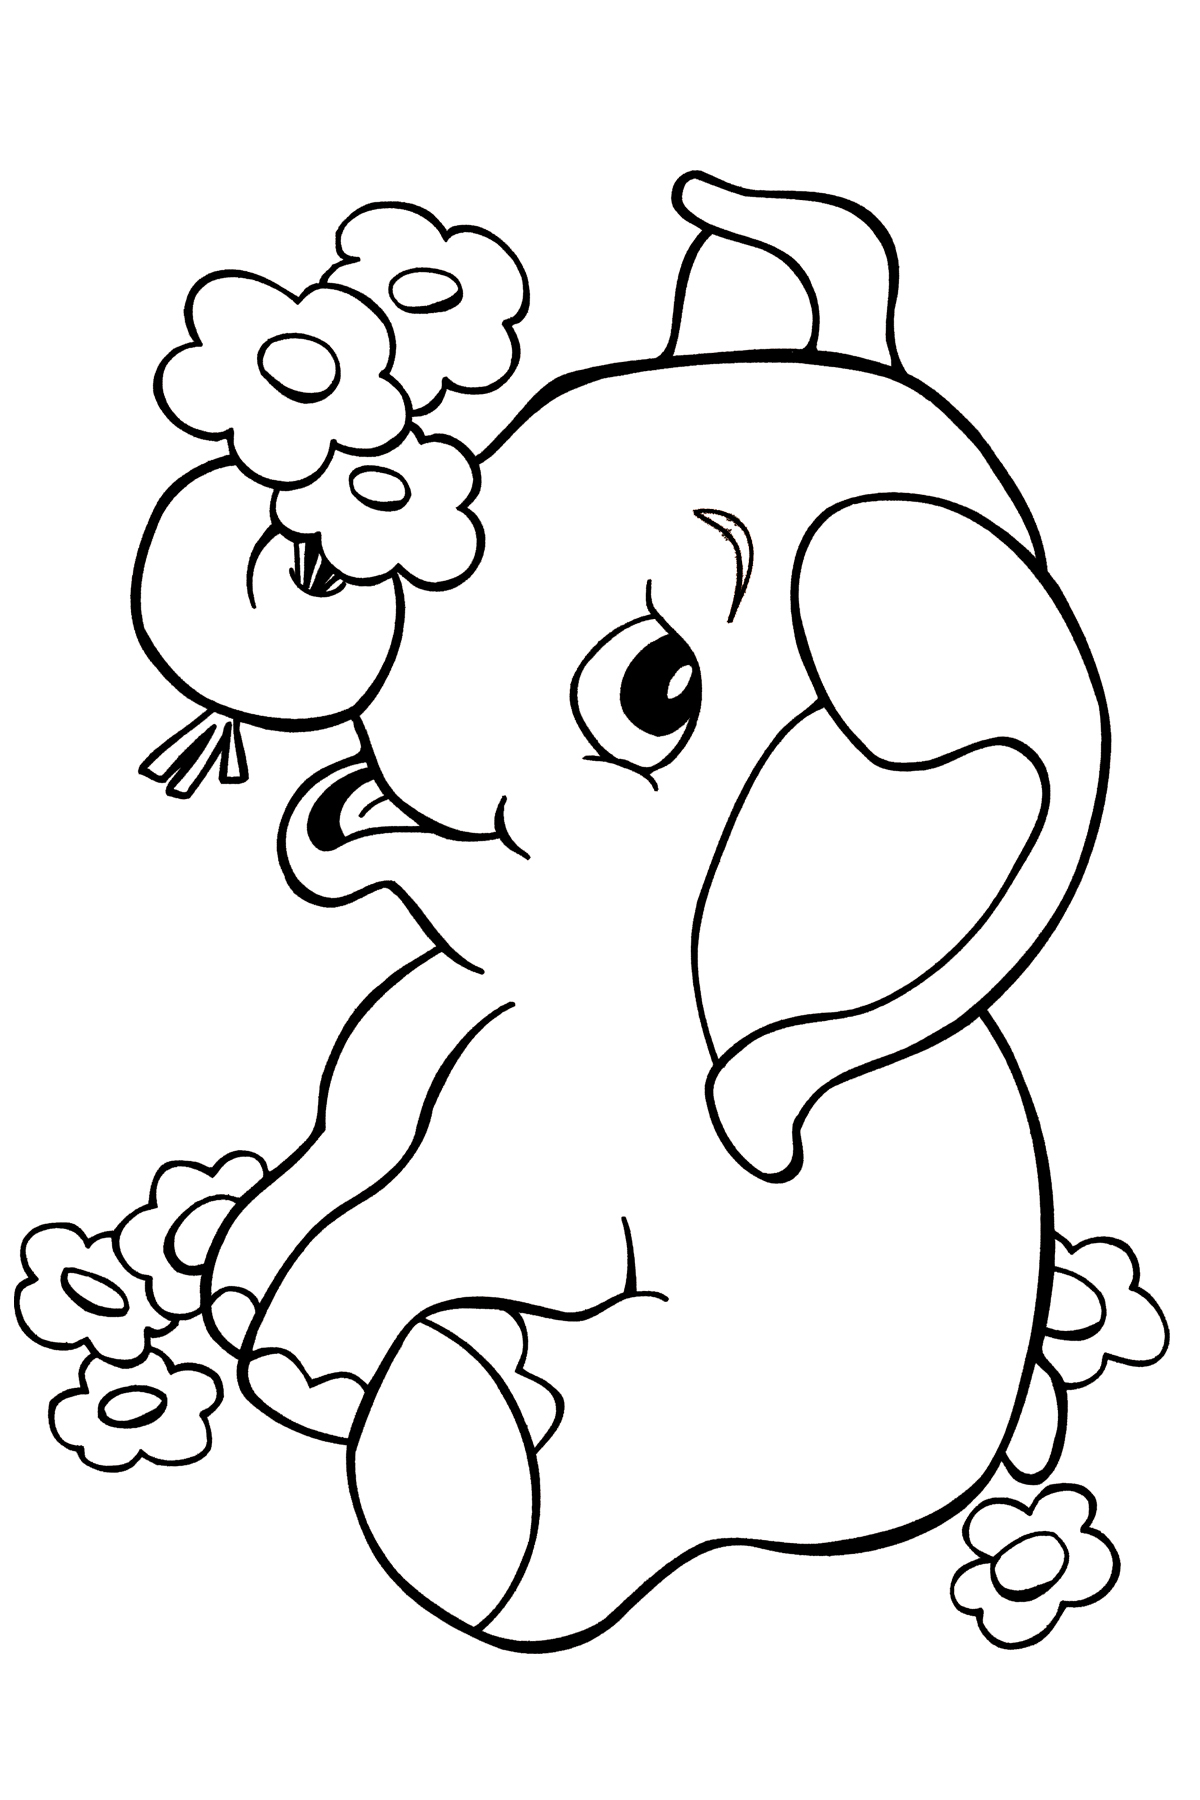 elephant color pages - free printable elephant coloring pages for kids animal place